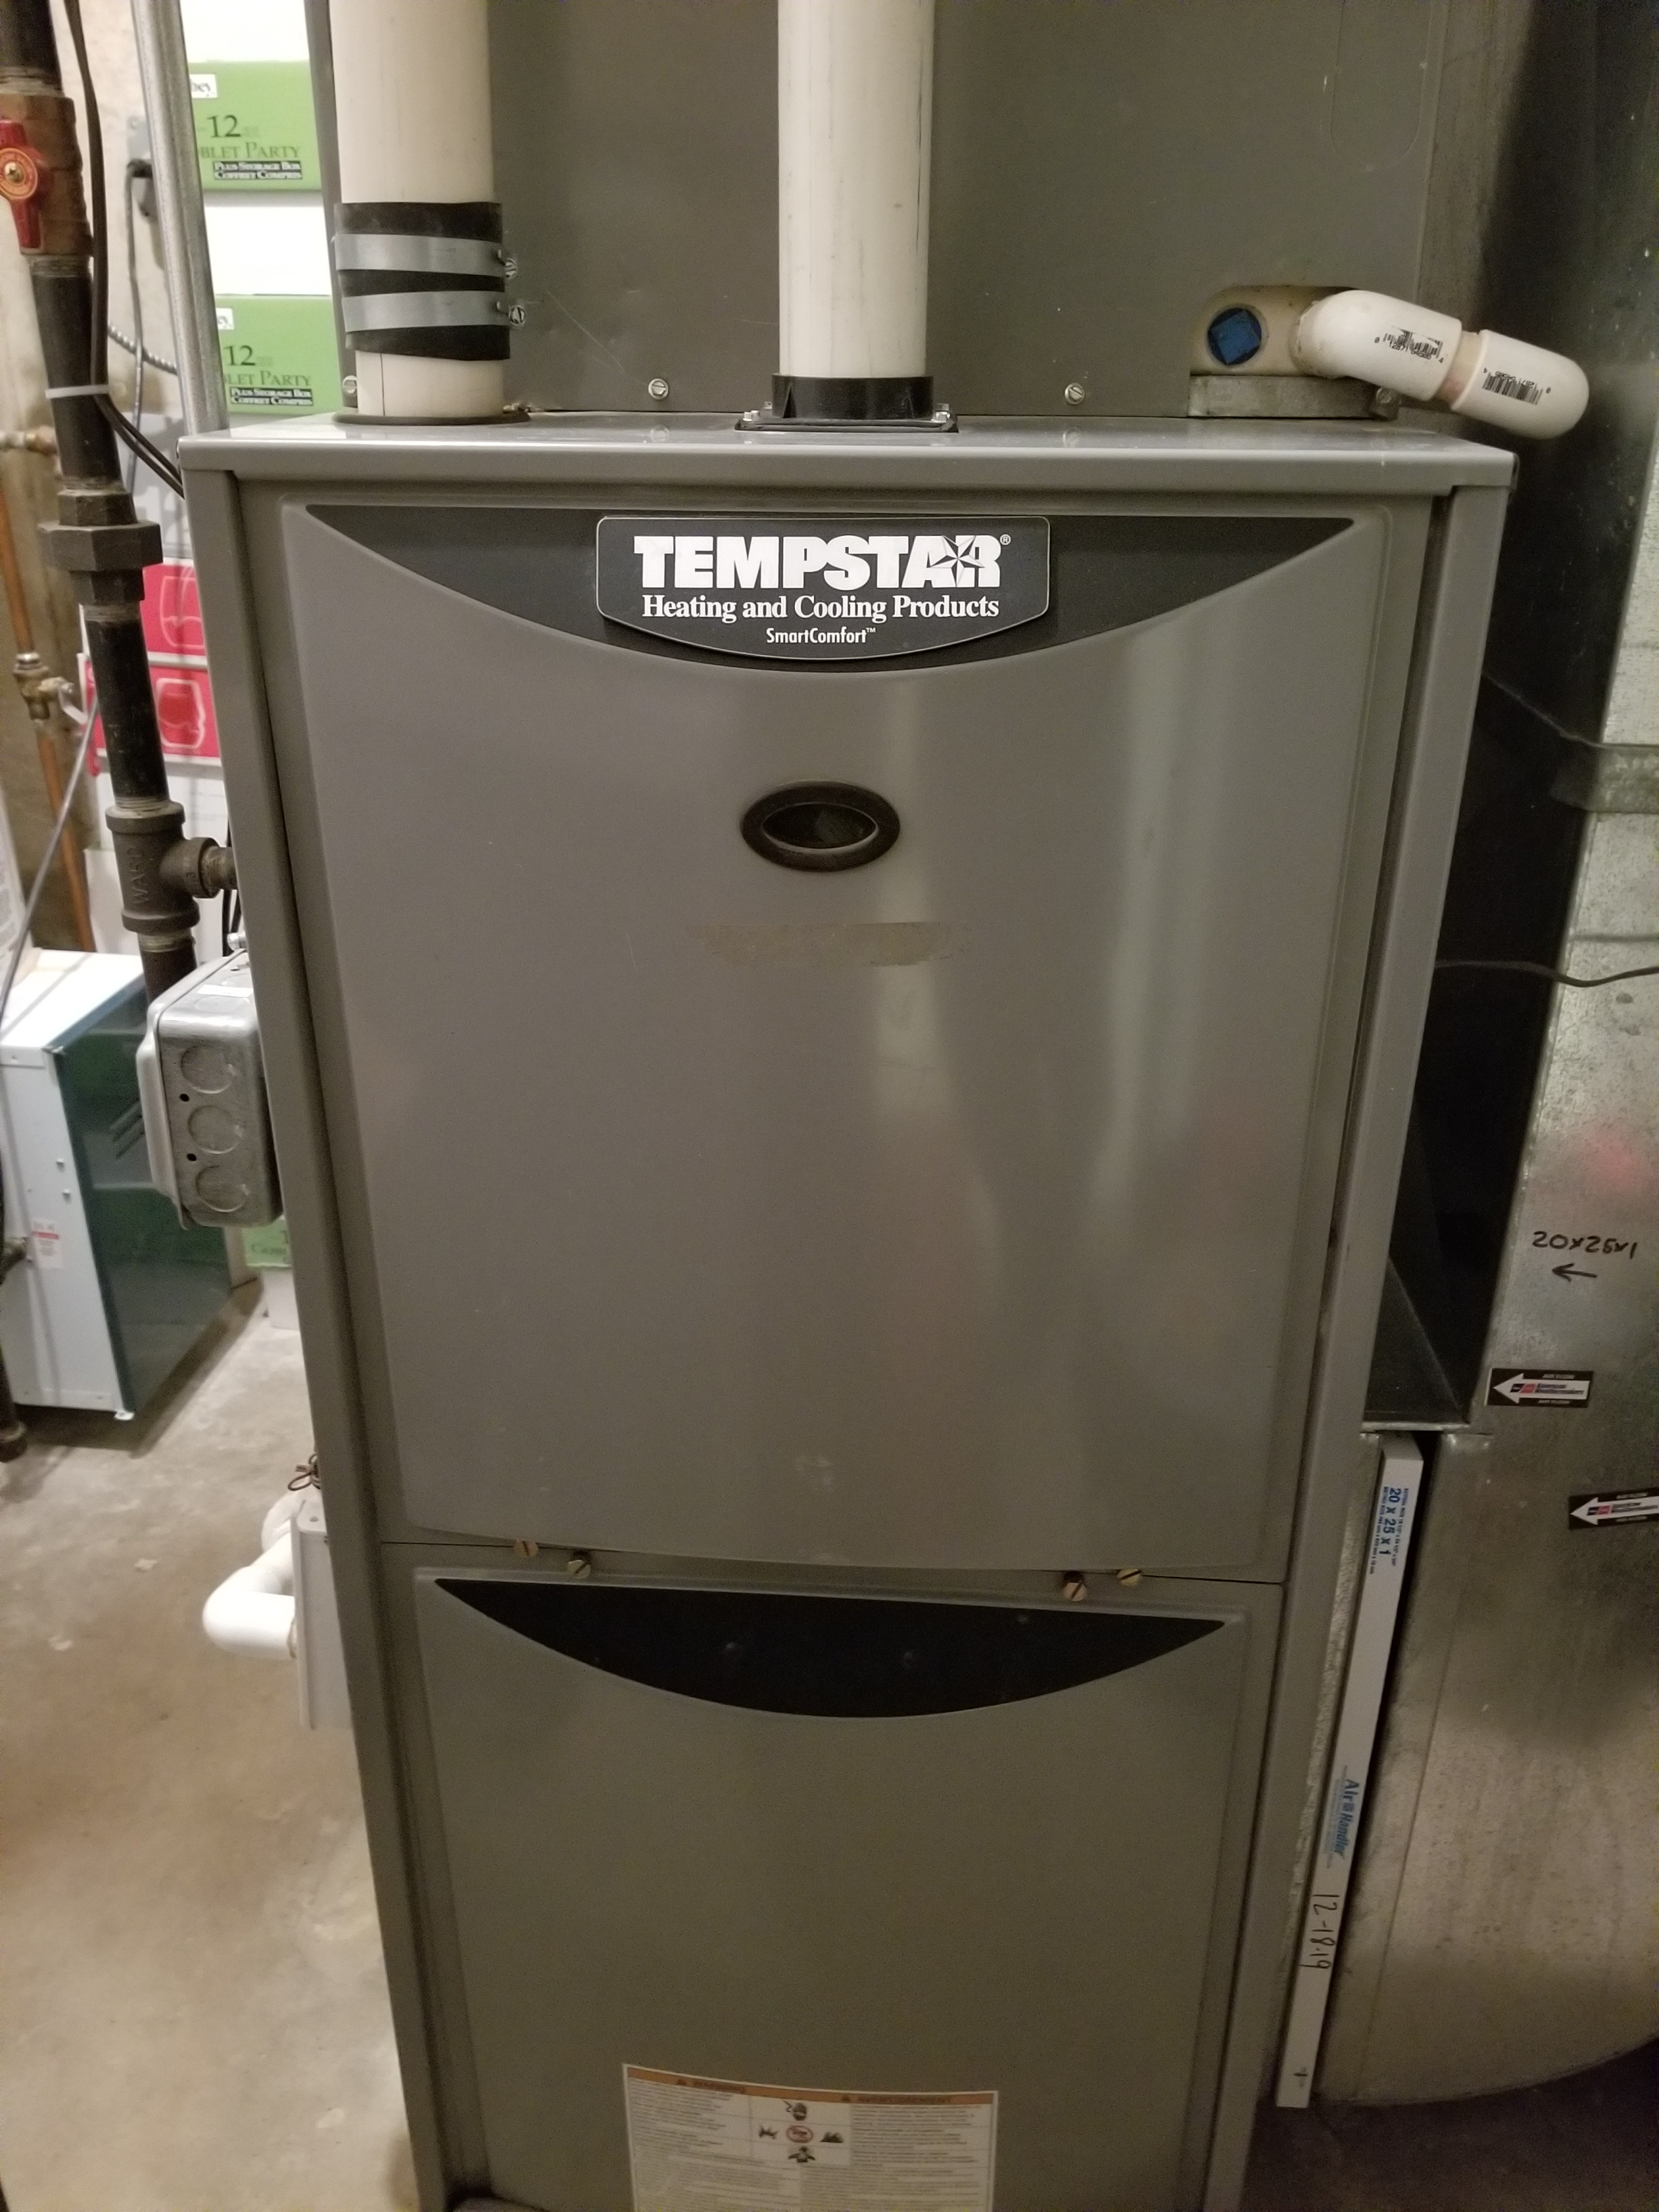 Performed annual maintenance on the Tempstar furnace and Aprilaire humidifier and made adjustments to improve the overall efficiency and life expectancy of the equipment